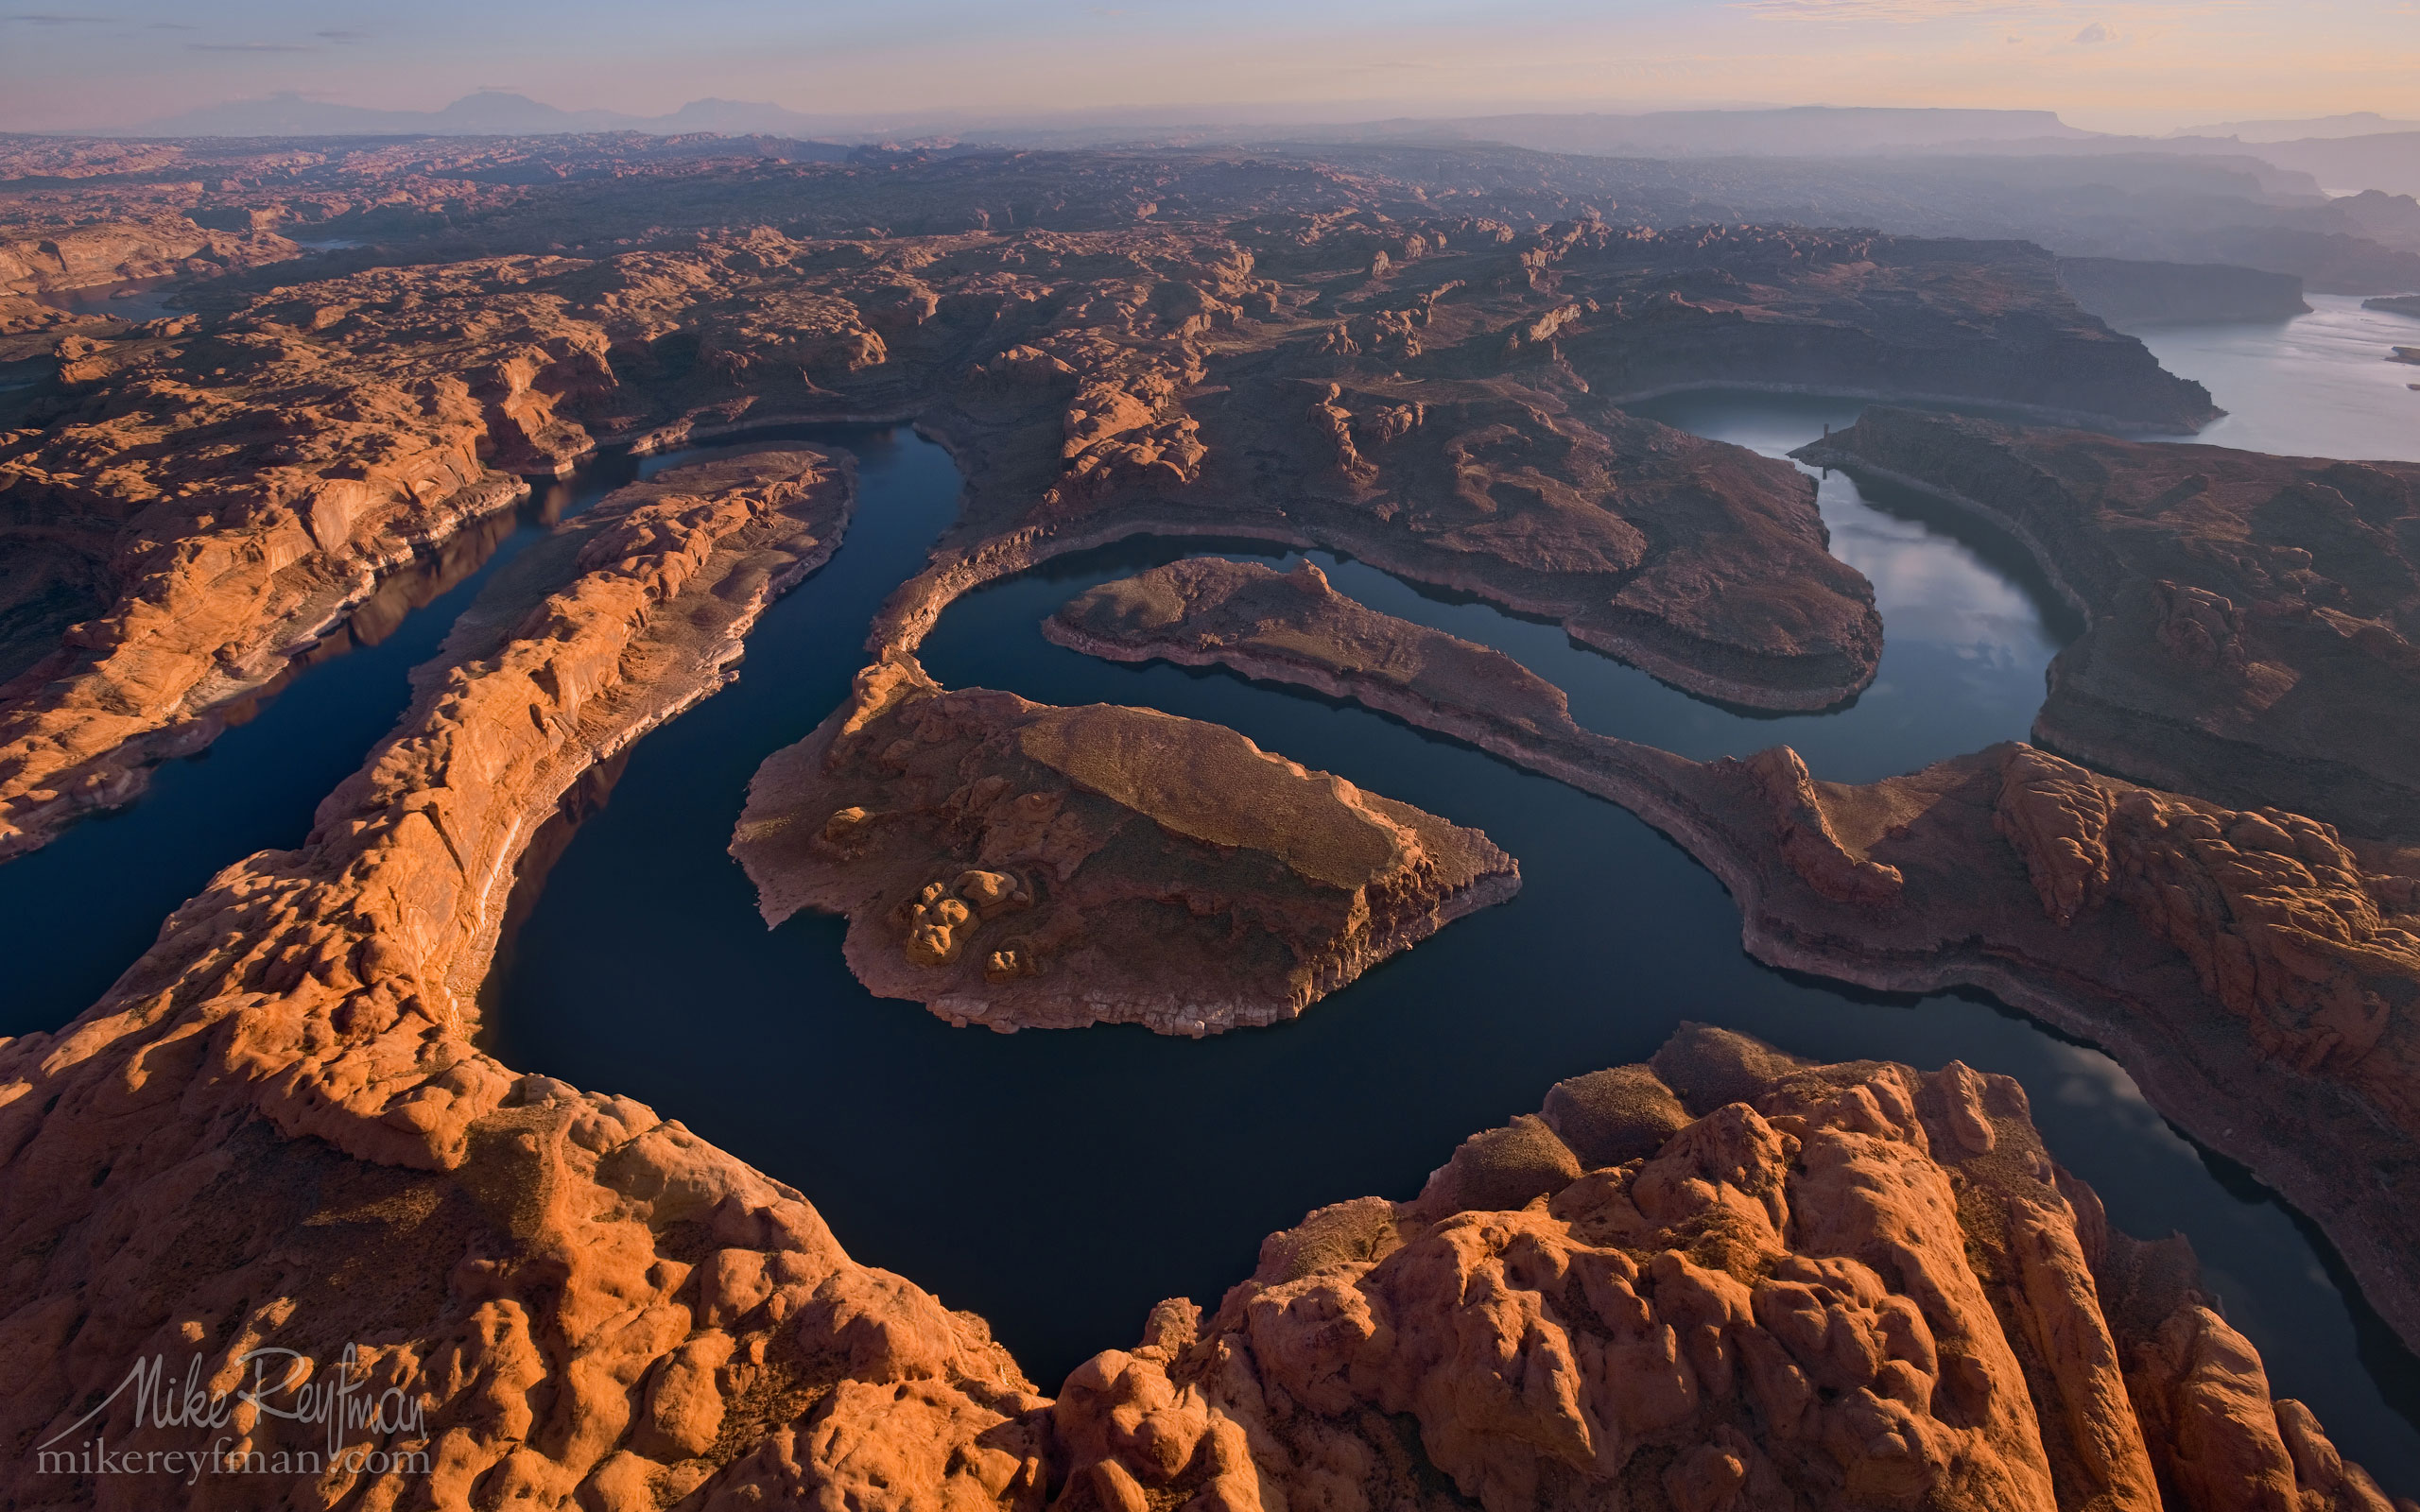 Confluence of San Juan & Colorado Rivers. Glen Canyon NRA, Lake Powell, Utah/Arizona, USA. Aerial. 006-LP3_O3X5469.jpg - Lake Powell, Glen Canyon NAR. Colorado and Sun Juan Rivers. Utah/Arizona, USA  - Mike Reyfman Photography